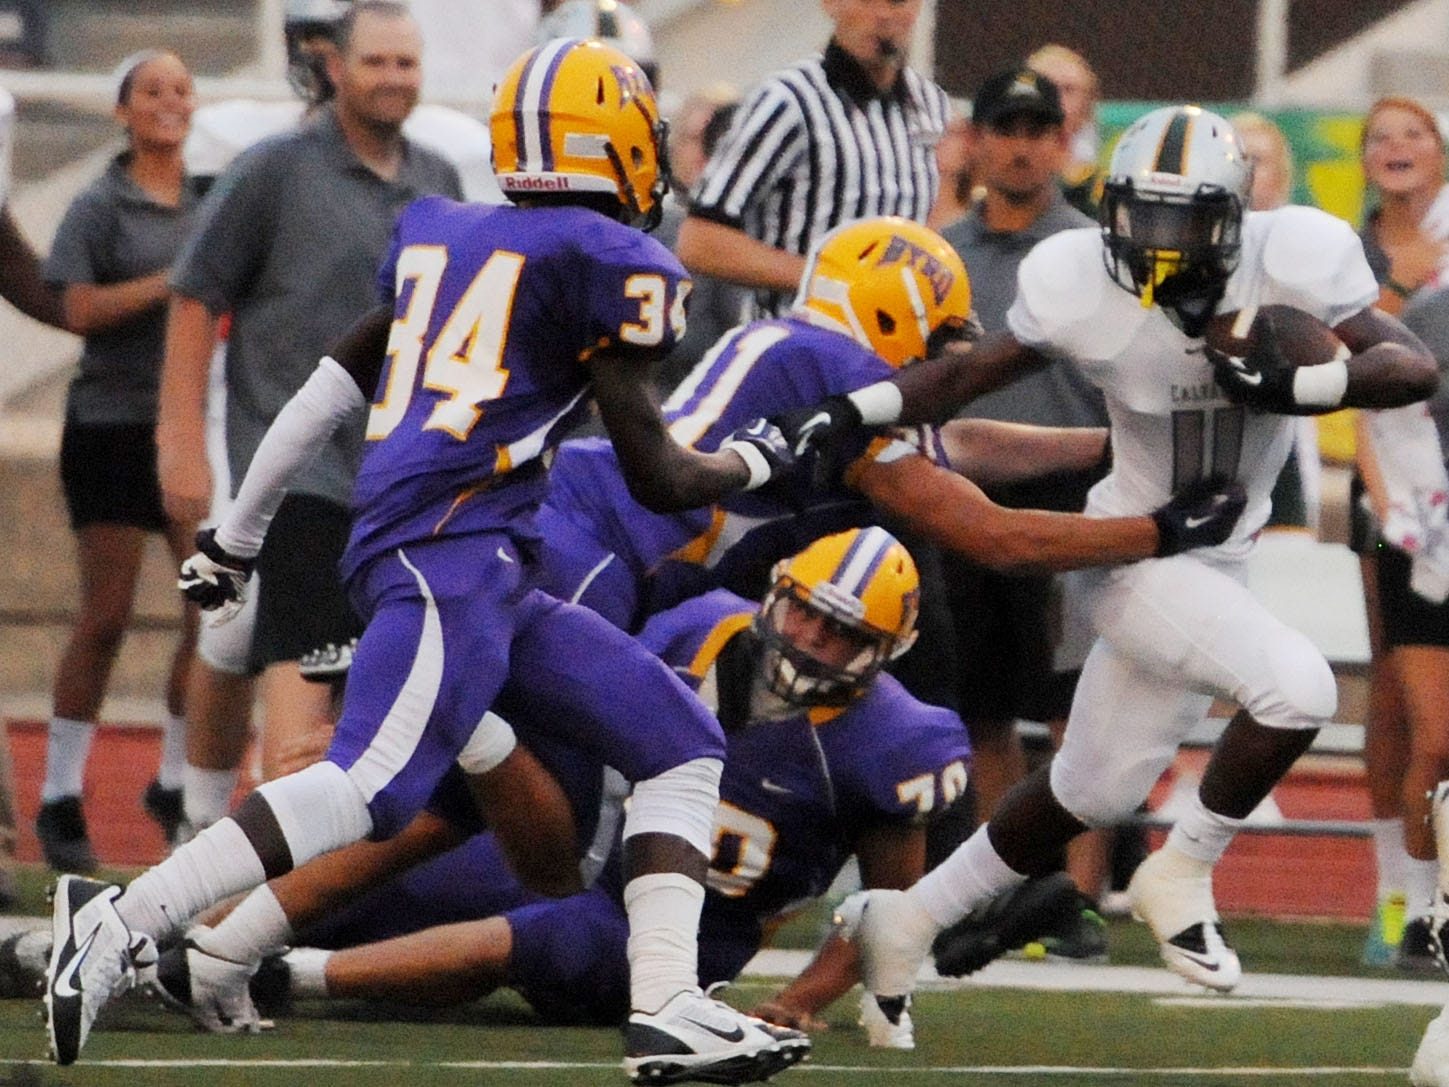 Calvary's Shun Brown (11) tries to get away from the Byrd defense this past season in a 48-21 Yellow Jackets' win at Lee Hedges Stadium.